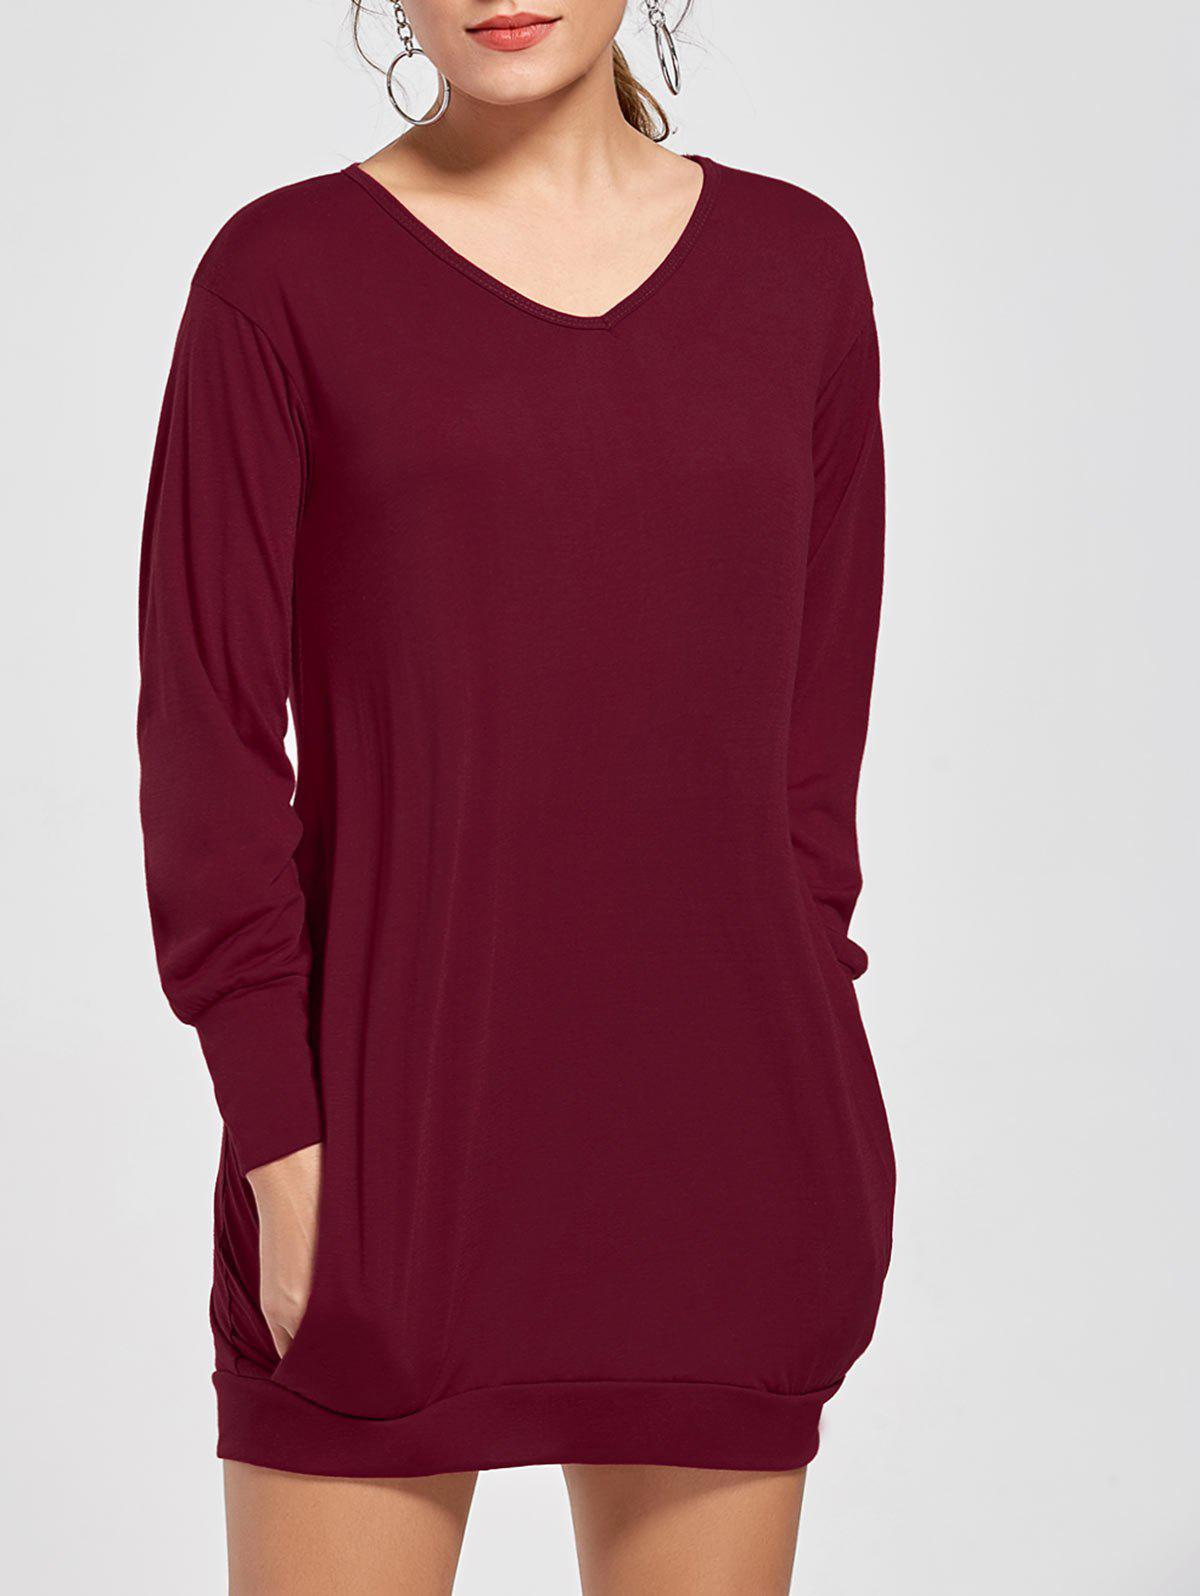 Stylish Plunging Neck Long Sleeve Pocket Design Solid Color Women's Dress - WINE RED M